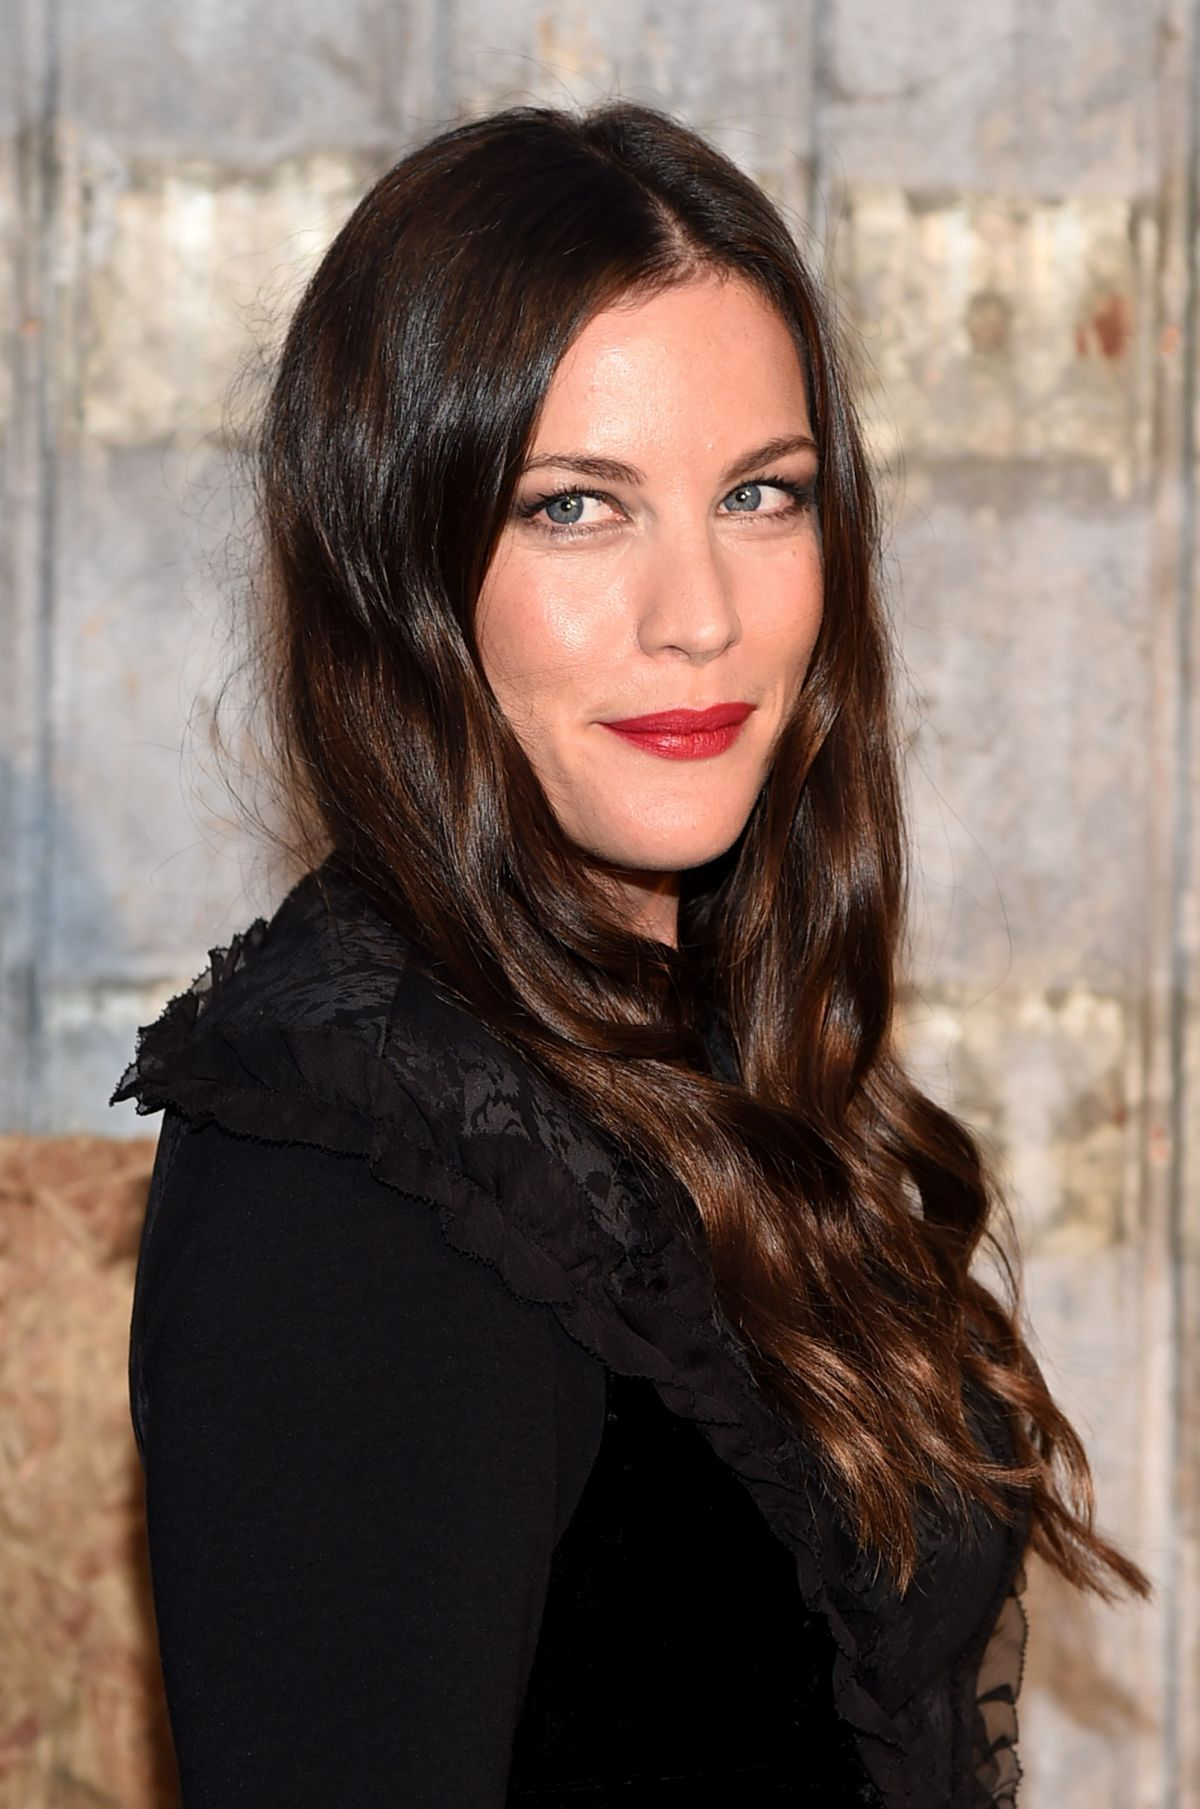 LIV TYLER at Givenchy Fashion Show in New York 09/11/2015 ... Liv Tyler